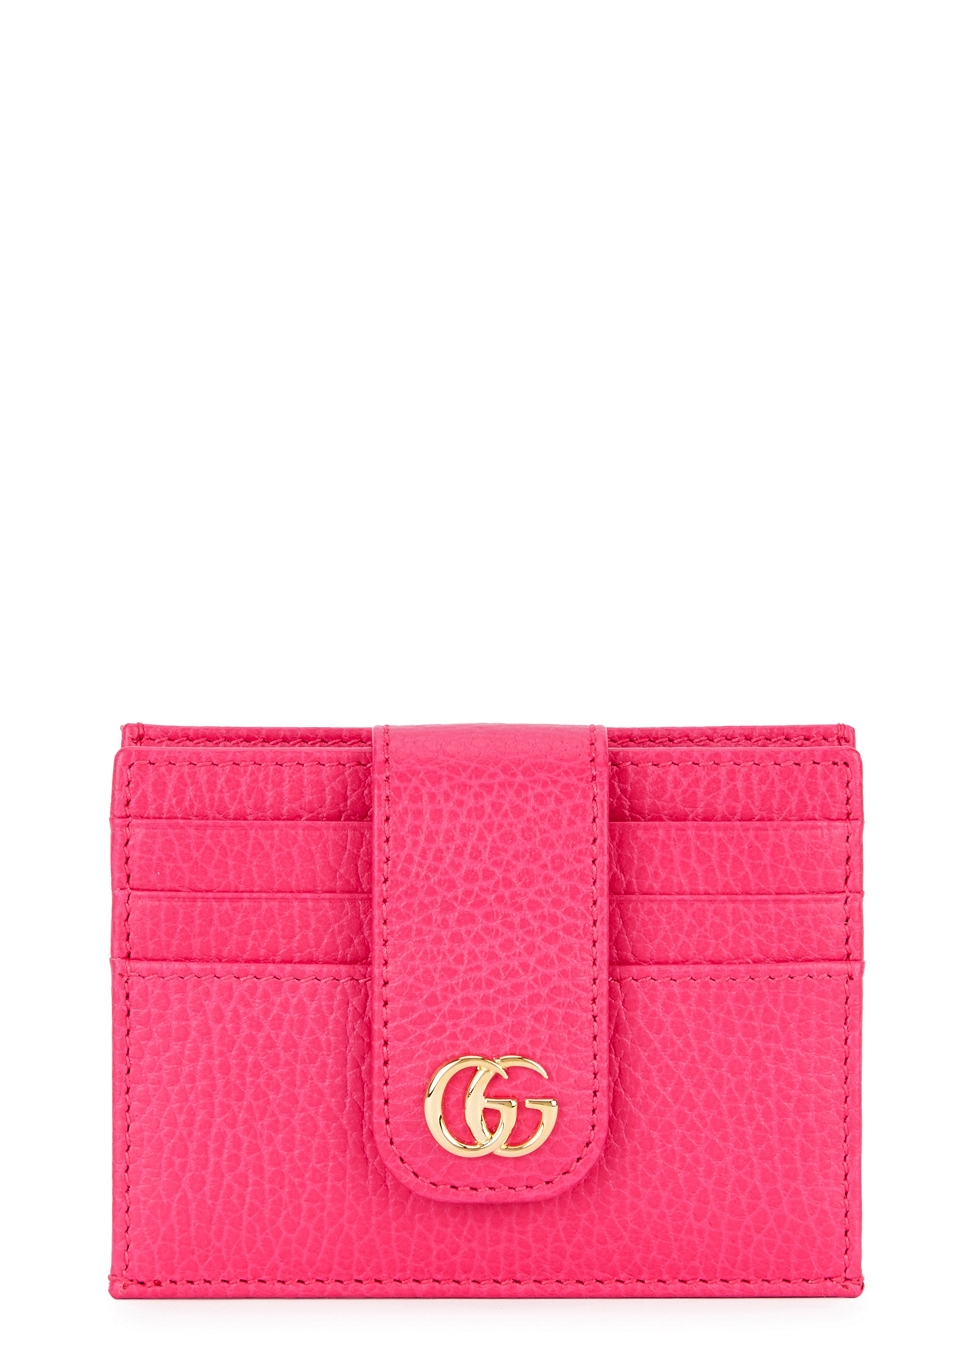 GG MARMONT MINI LEATHER CARDHOLDER